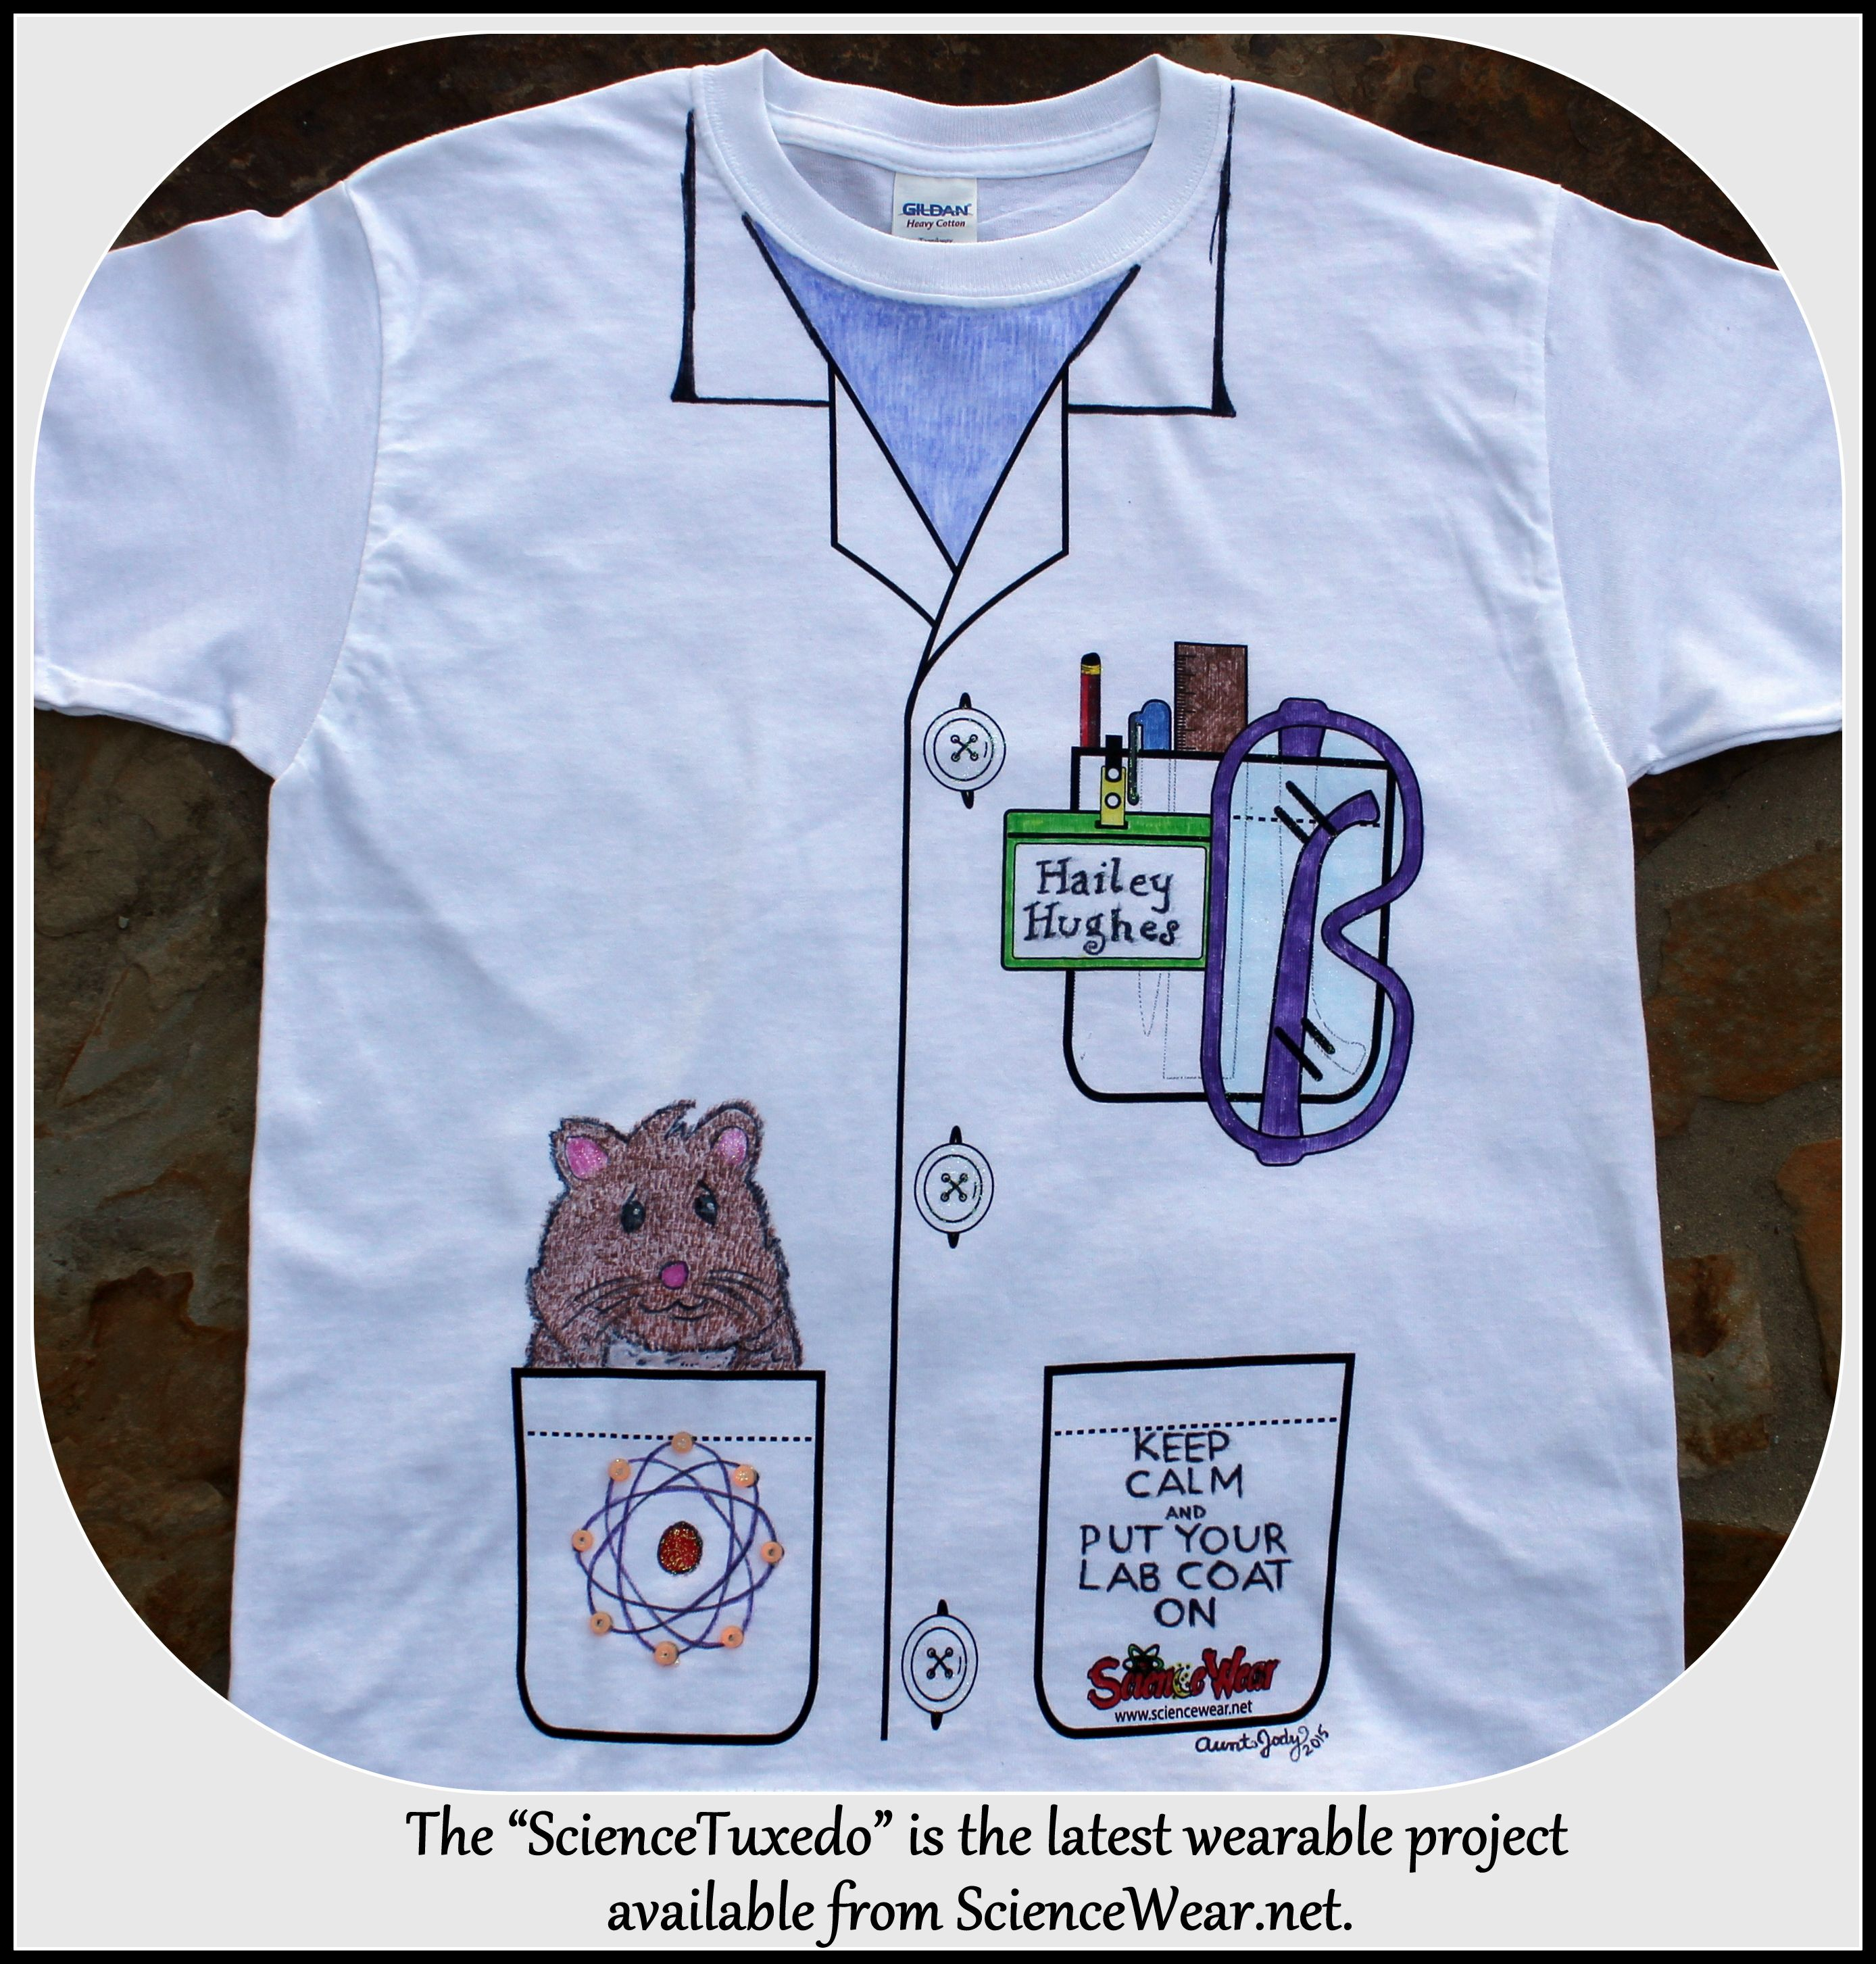 Together with container blocks on t shirt design kit free download - Science Tuxedo Shirt Project For The Classroom Now Everyone Can Have Their Own Lab Coat